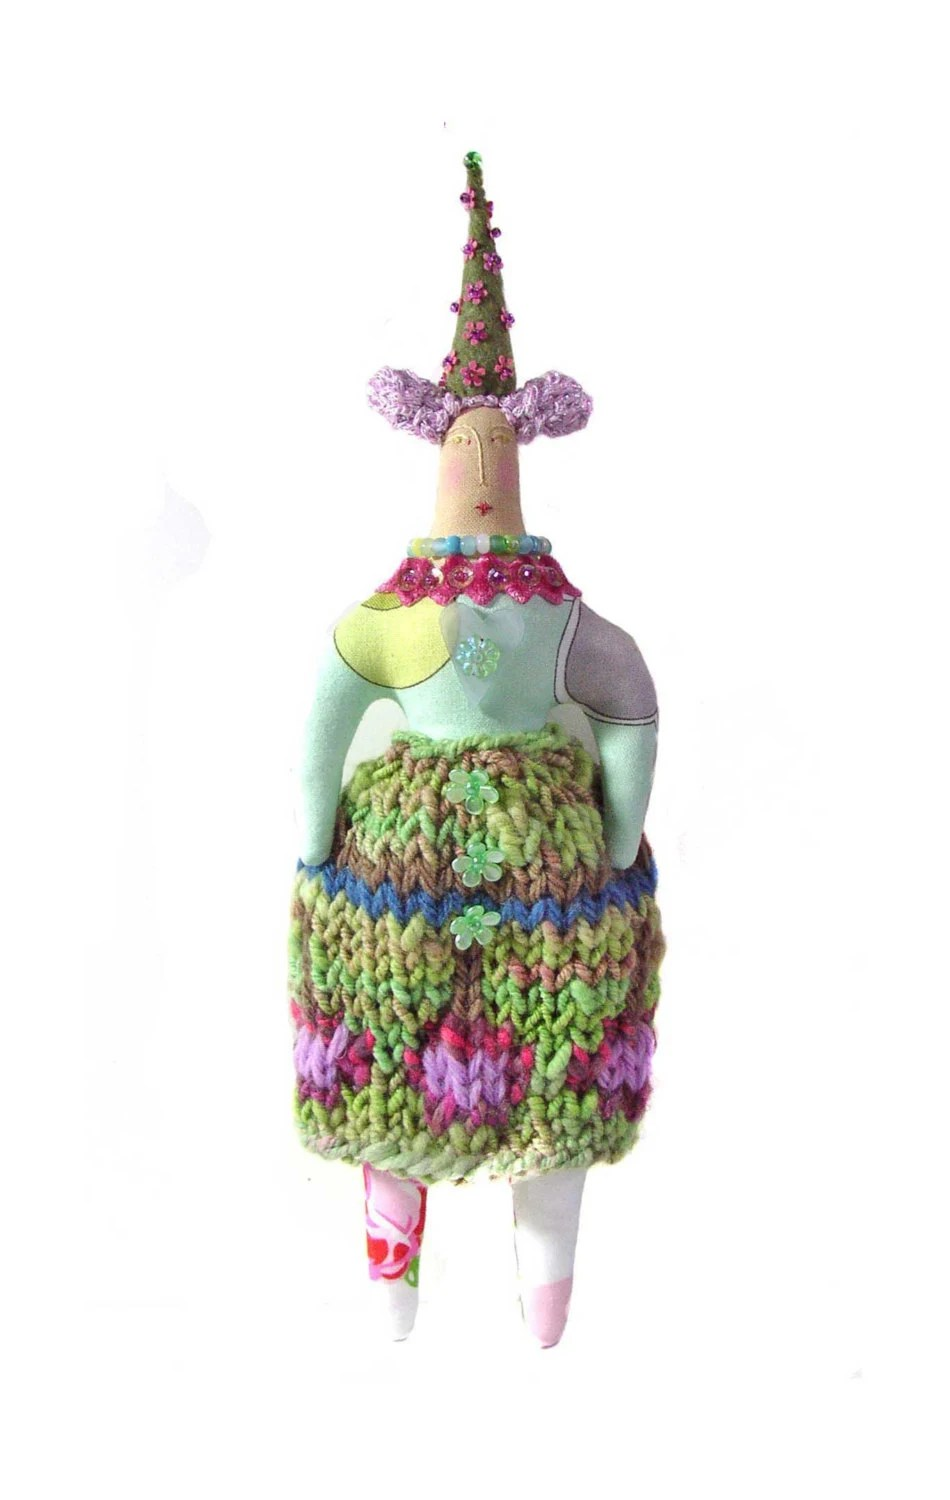 SALE  Whimsical Textile Art Cloth Doll with a Tall Cone Hat   Use coupon code SEA15 at checkout for 15% Off.